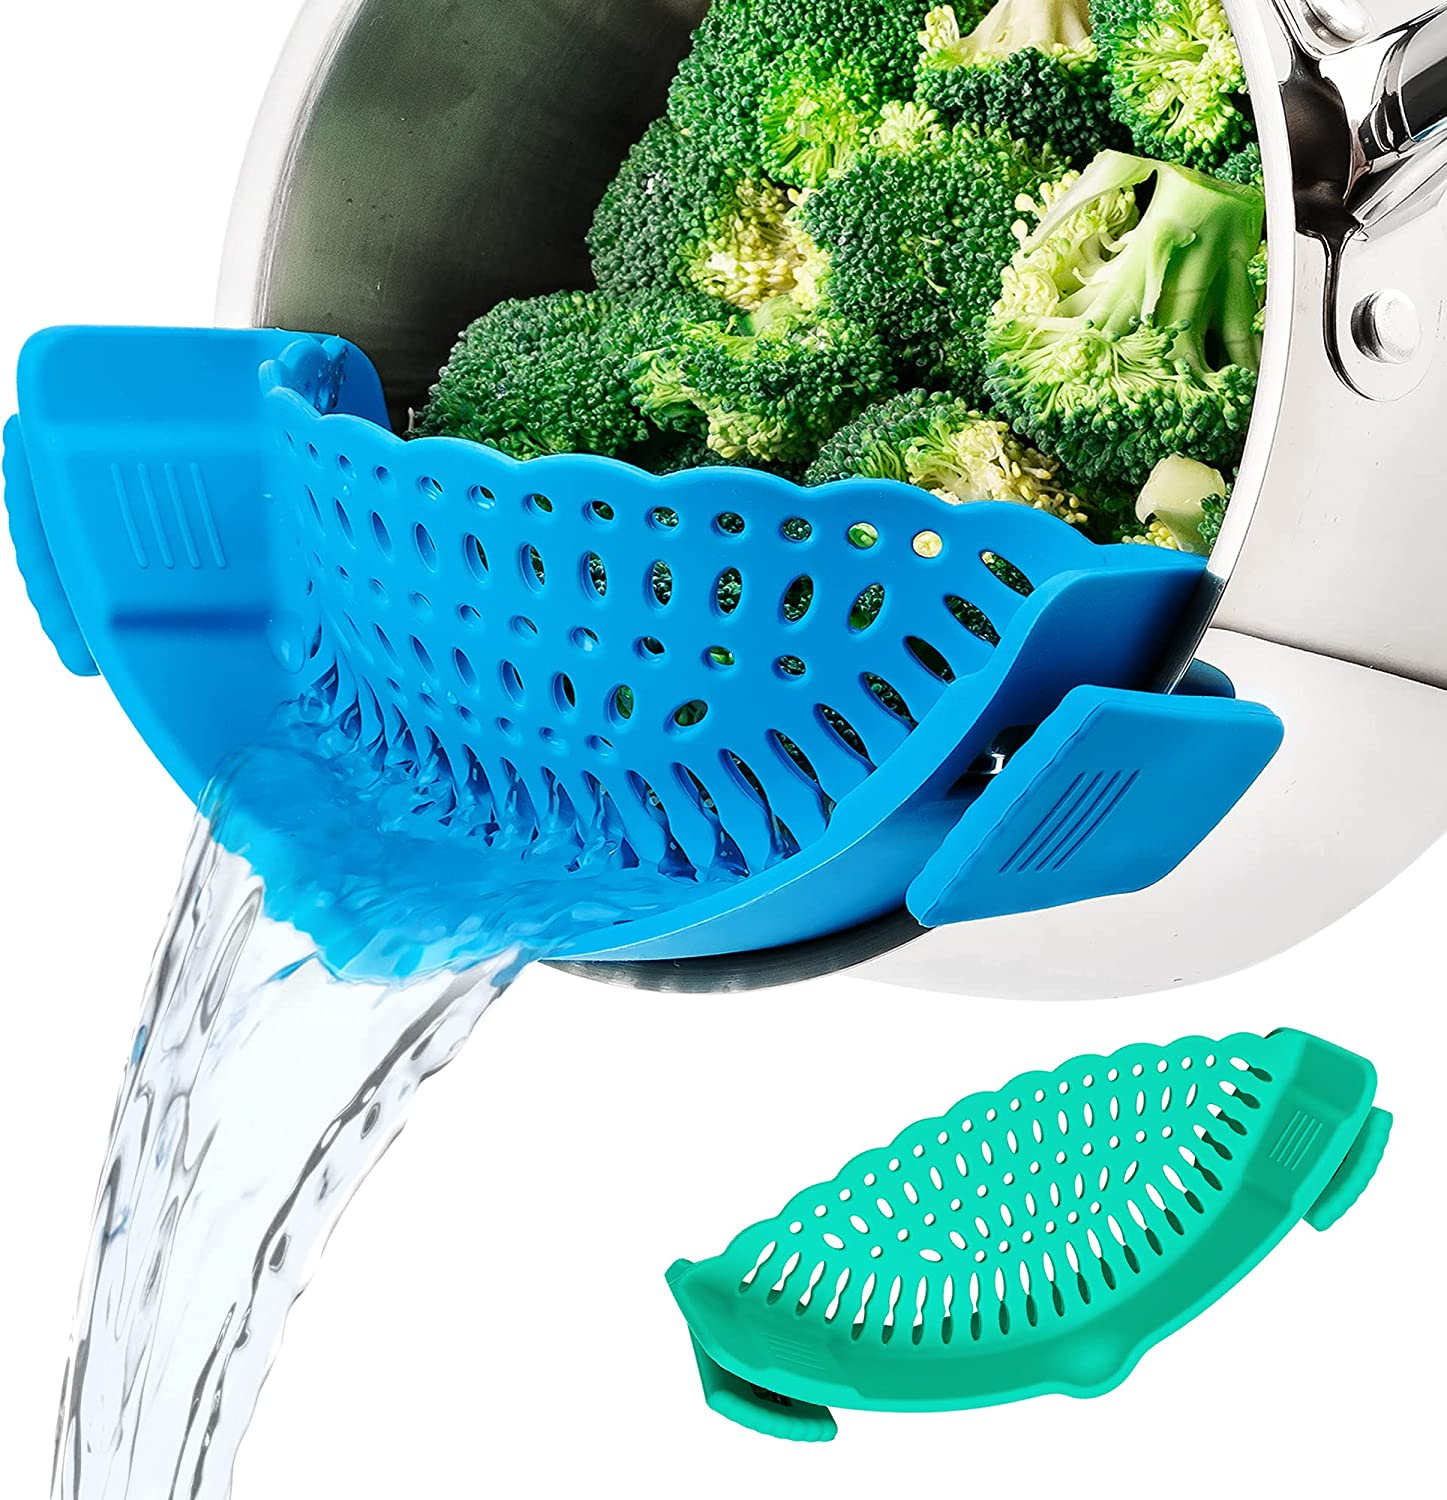 MICHELANGELO Snap Strainer 2 Pack, Clip on Strainer for Pots, Silicone Pot Strainer Clip on Colander Pasta Strainer Snap N Strain Kitchen Gadgets, Food Strainers Spaghetti Strainer Blue & Green